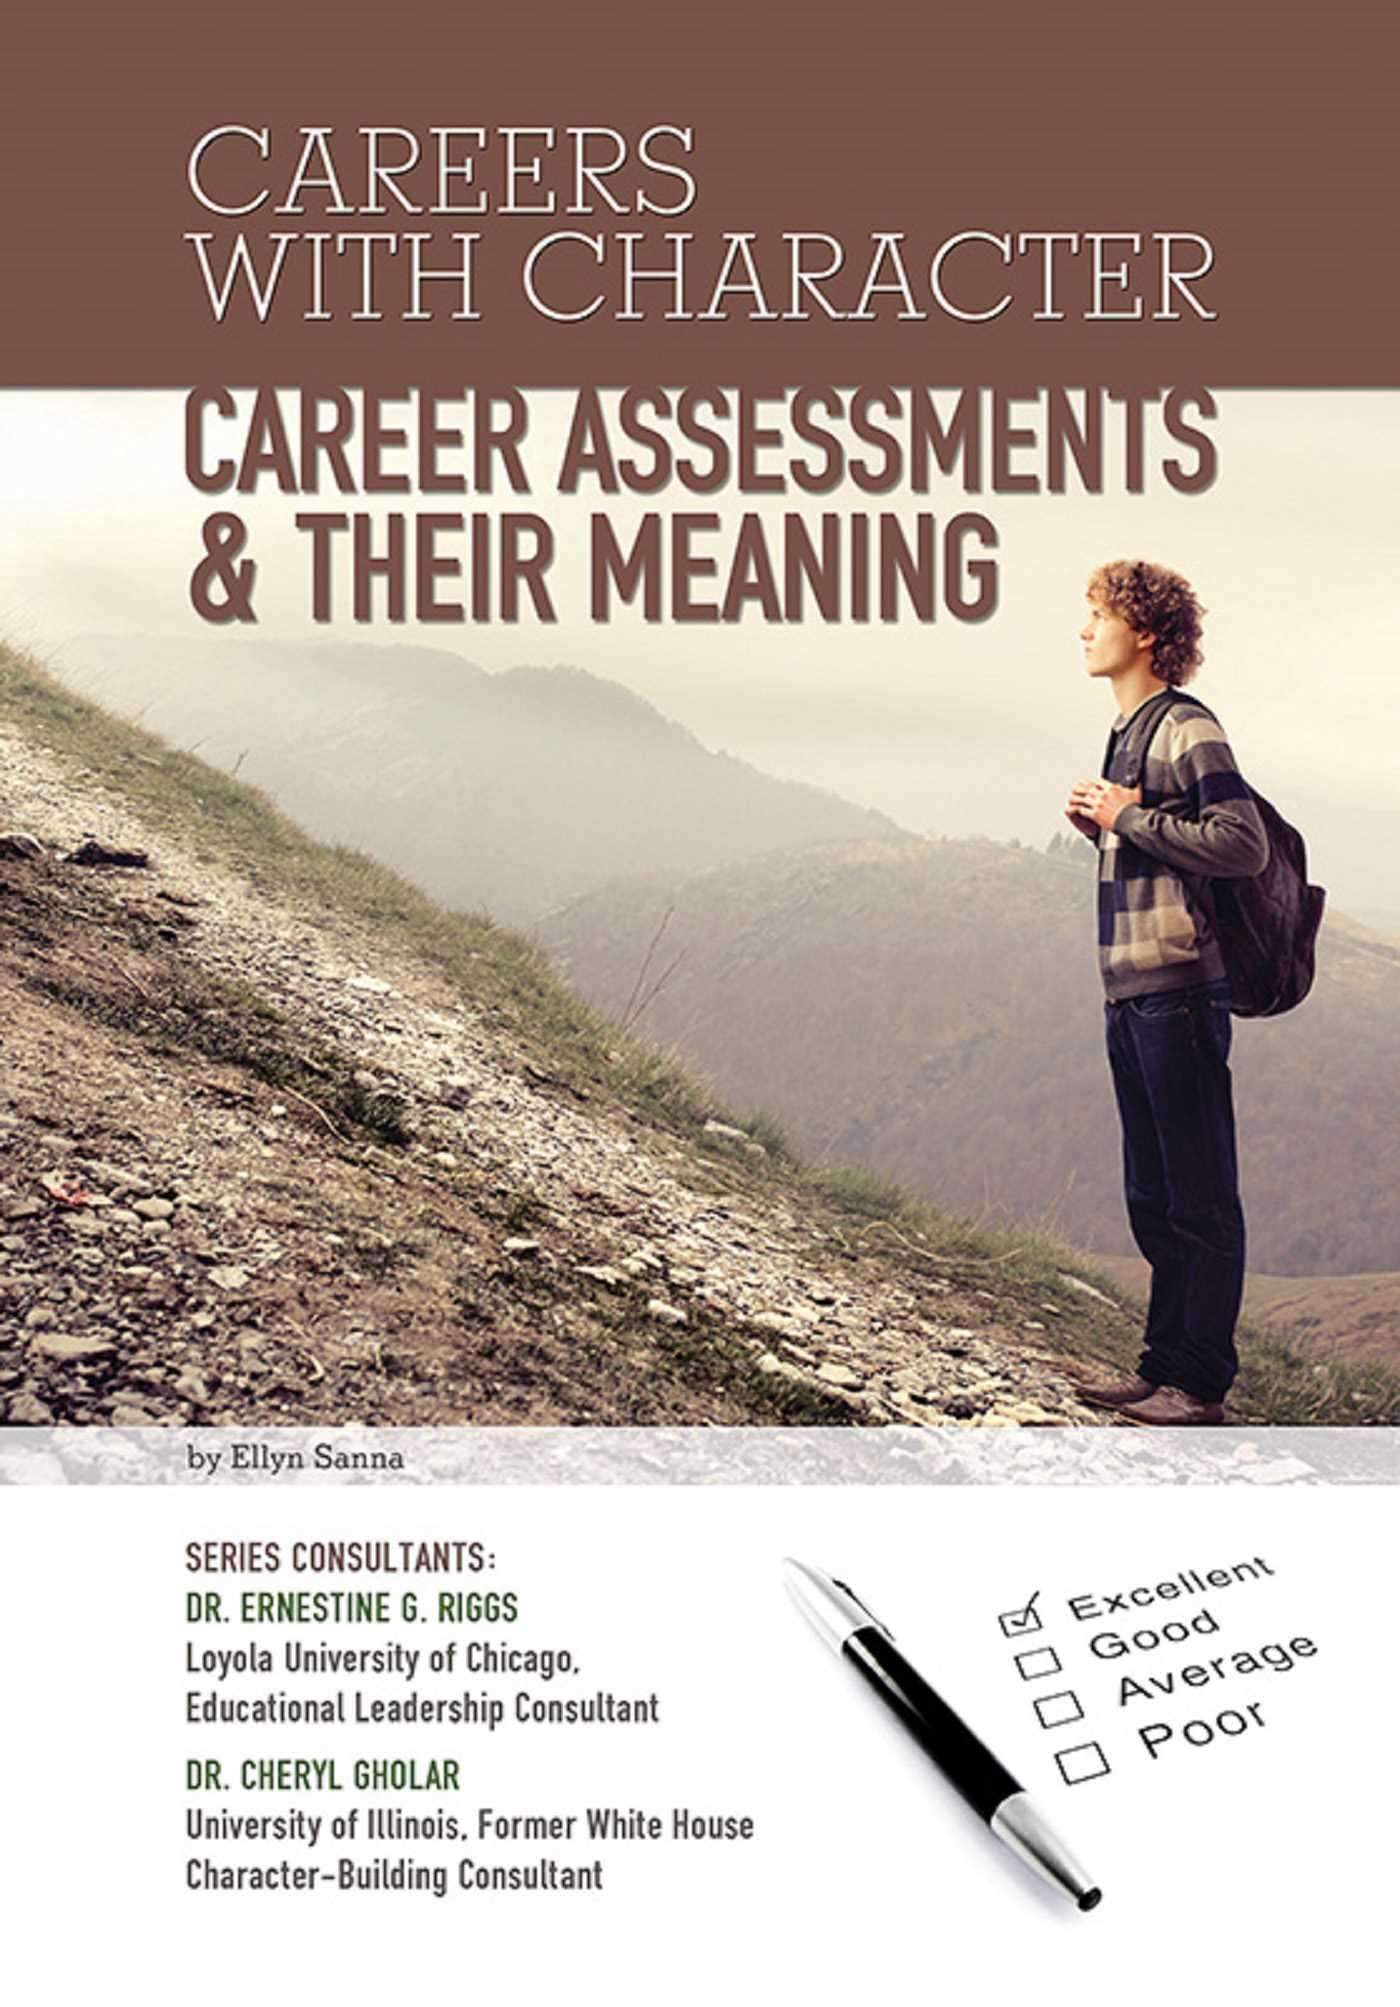 Career Assessments & Their Meaning eBook by Ellyn Sanna | Official  Publisher Page | Simon & Schuster